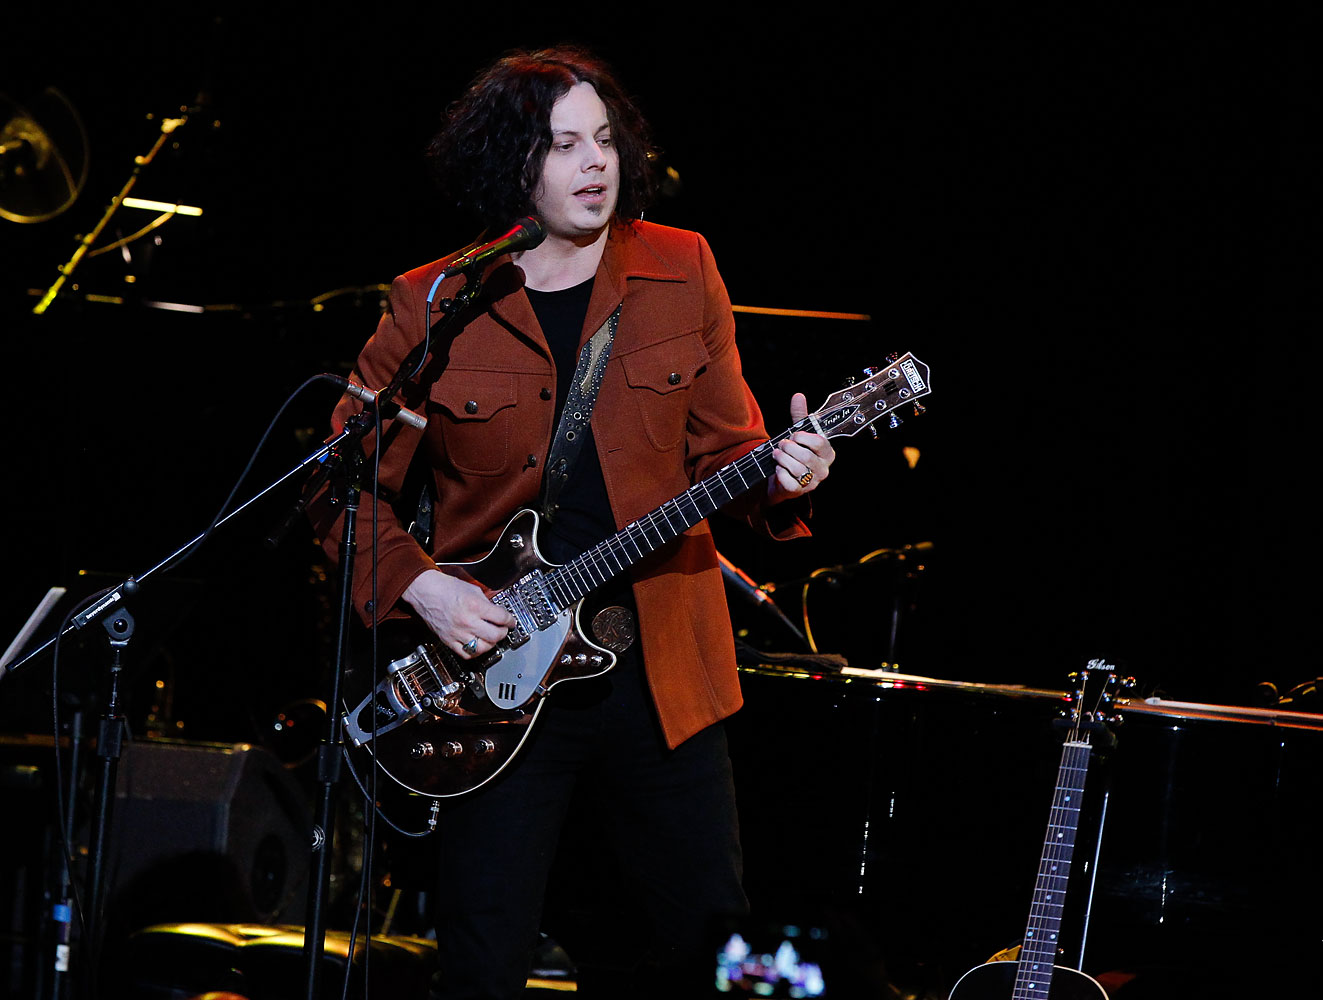 Jack White performs during Brendan Benson and Friends at the Ryman Auditorium on Dec. 18, 2013 in Nashville.